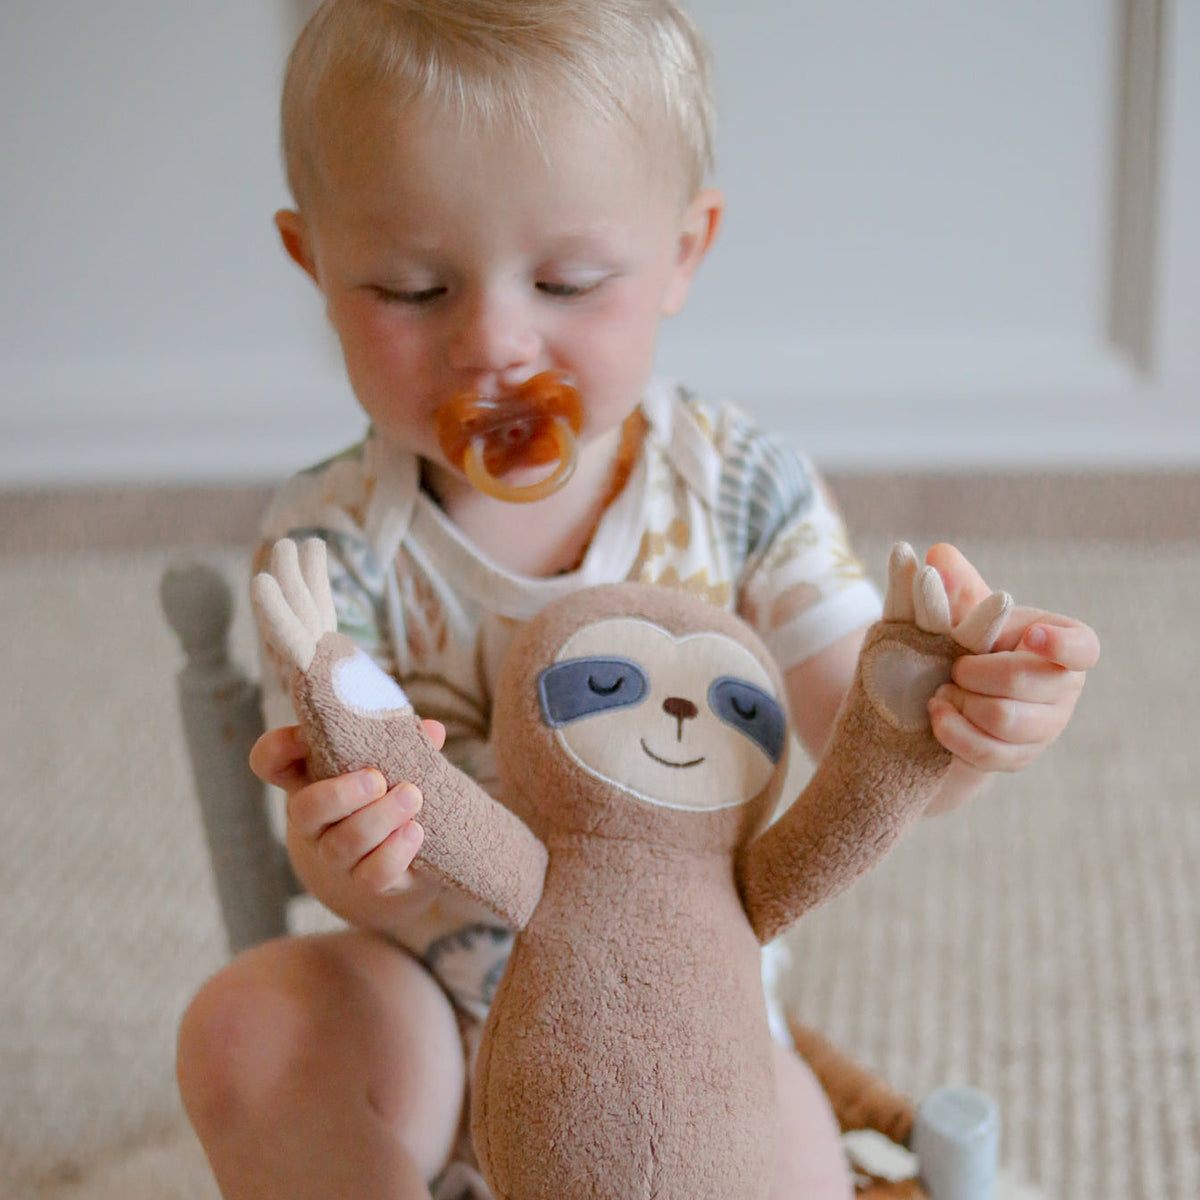 A toddler with a pacifier sitting in a rocking chair and holding an Apple Park sloth plush toy